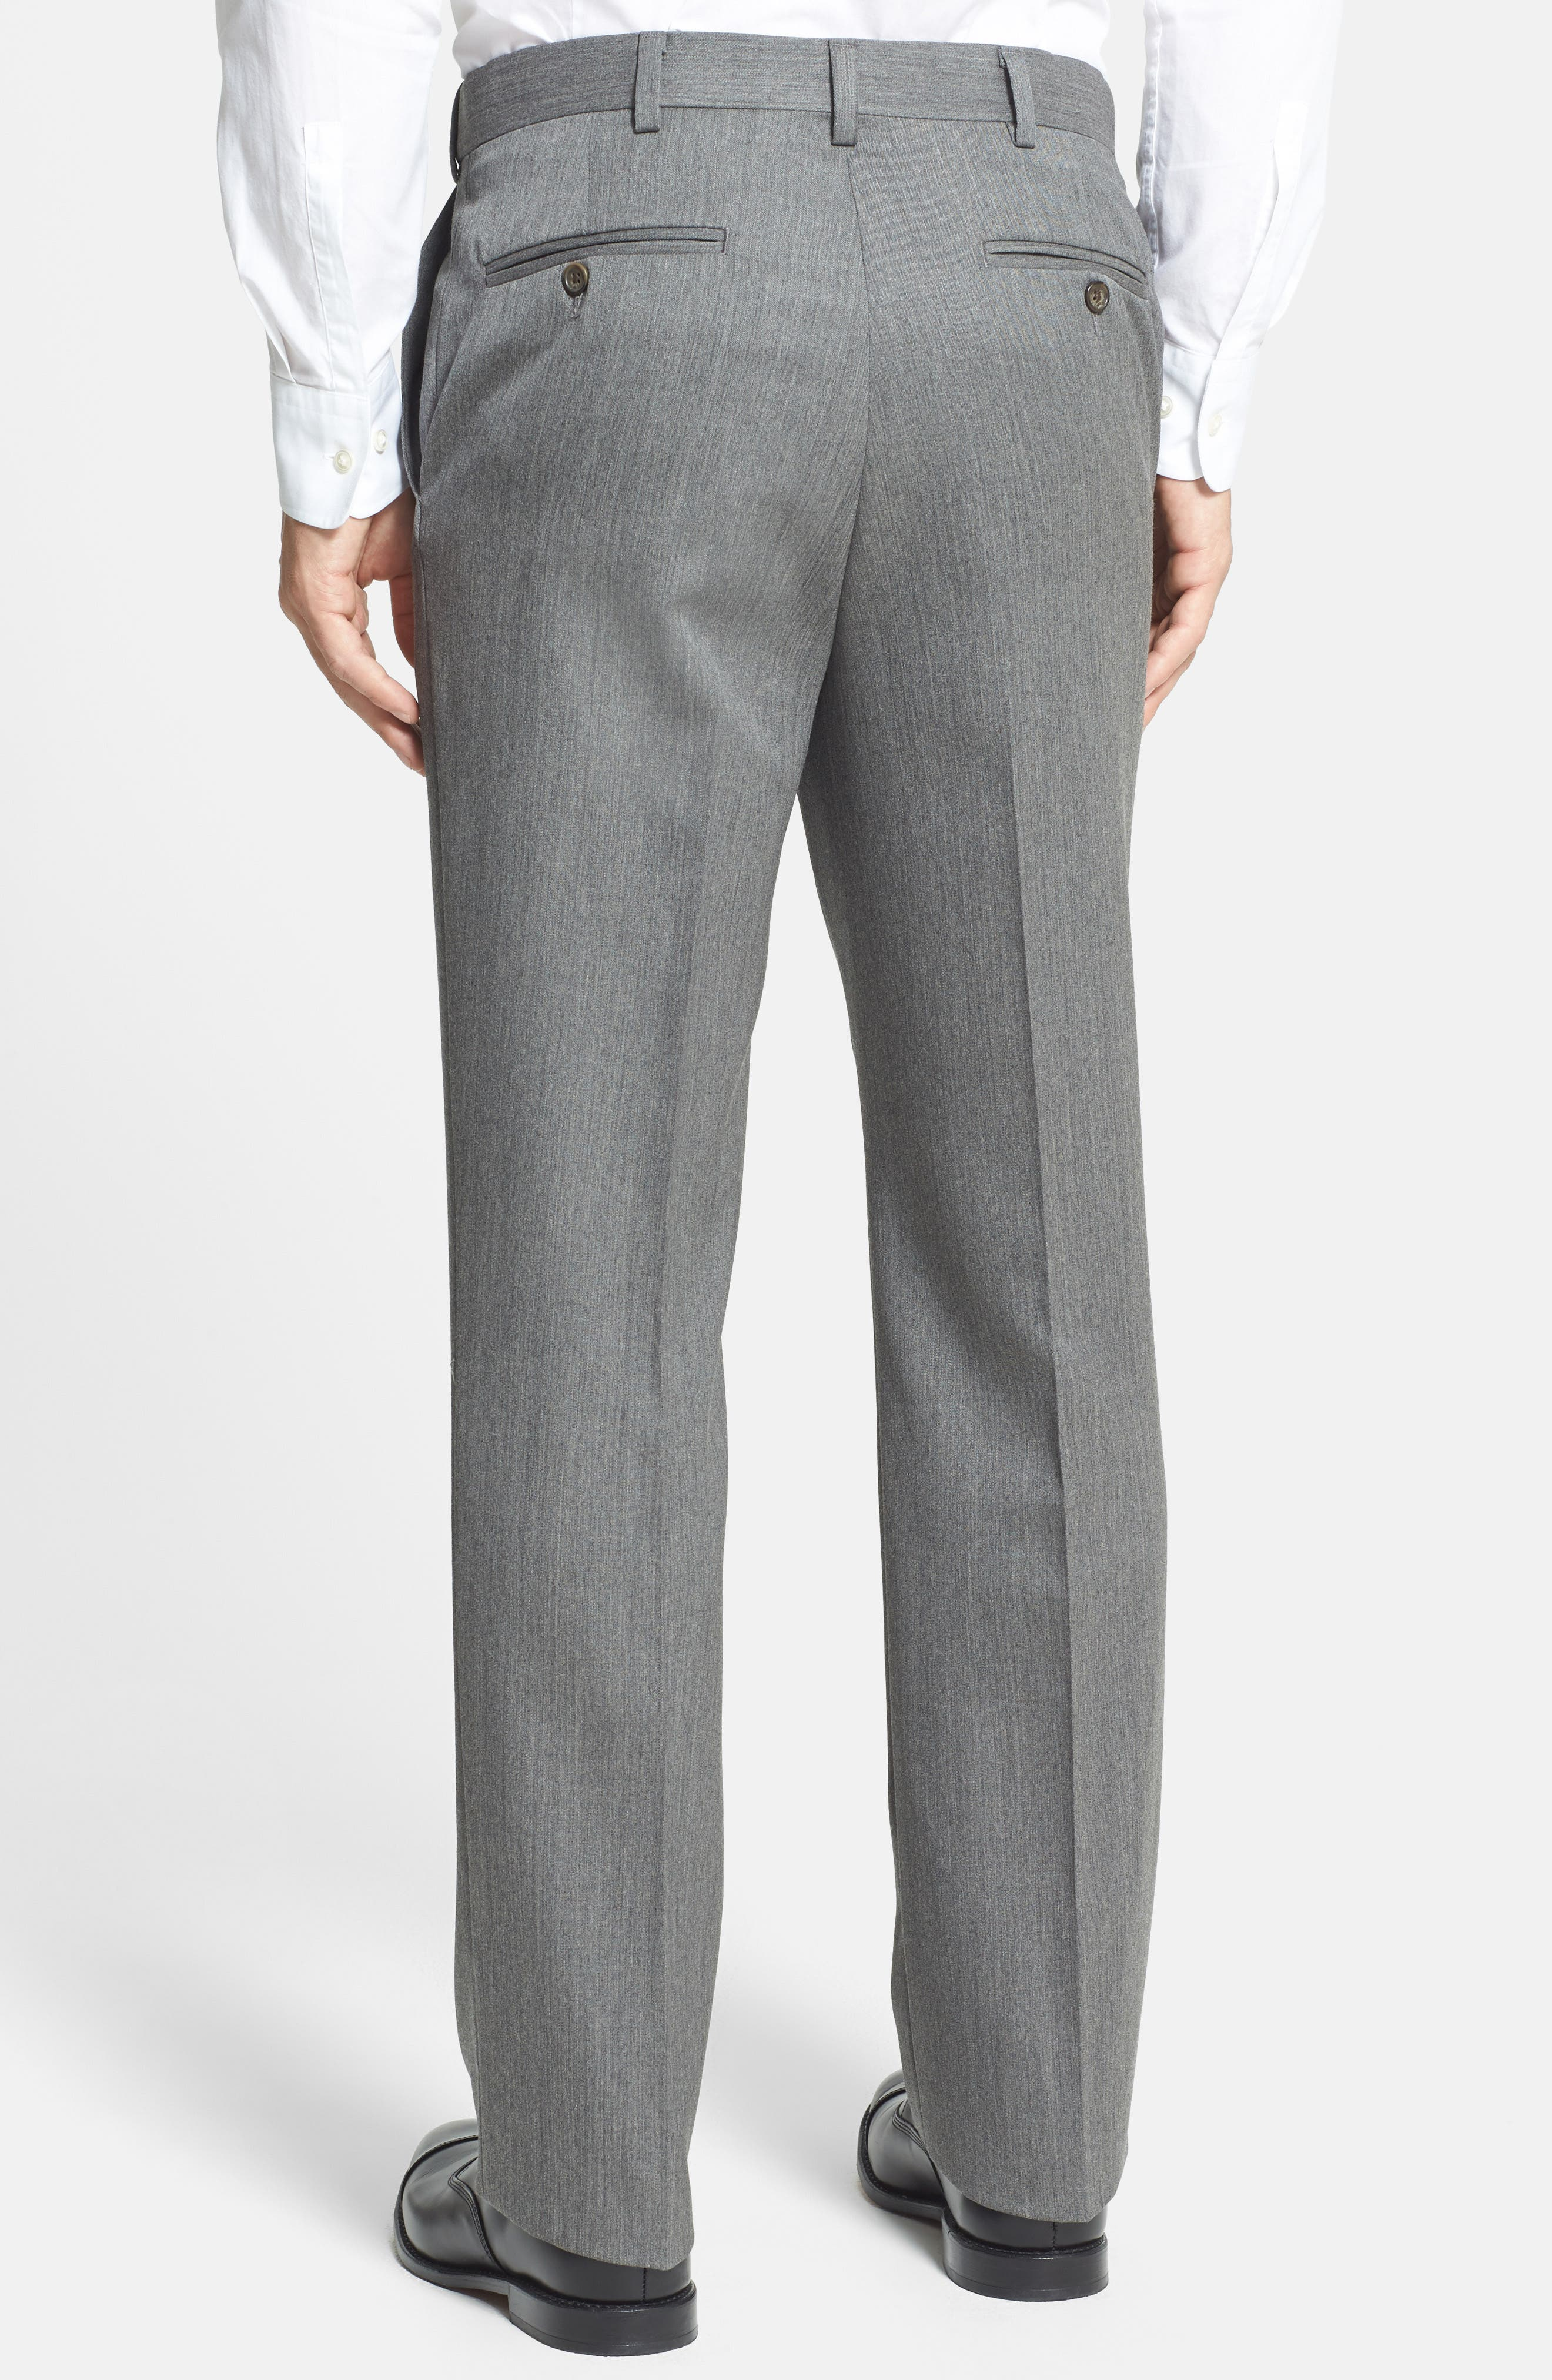 Self Sizer Waist Flat Front Wool Gabardine Trousers,                             Alternate thumbnail 5, color,                             MEDIUM GREY